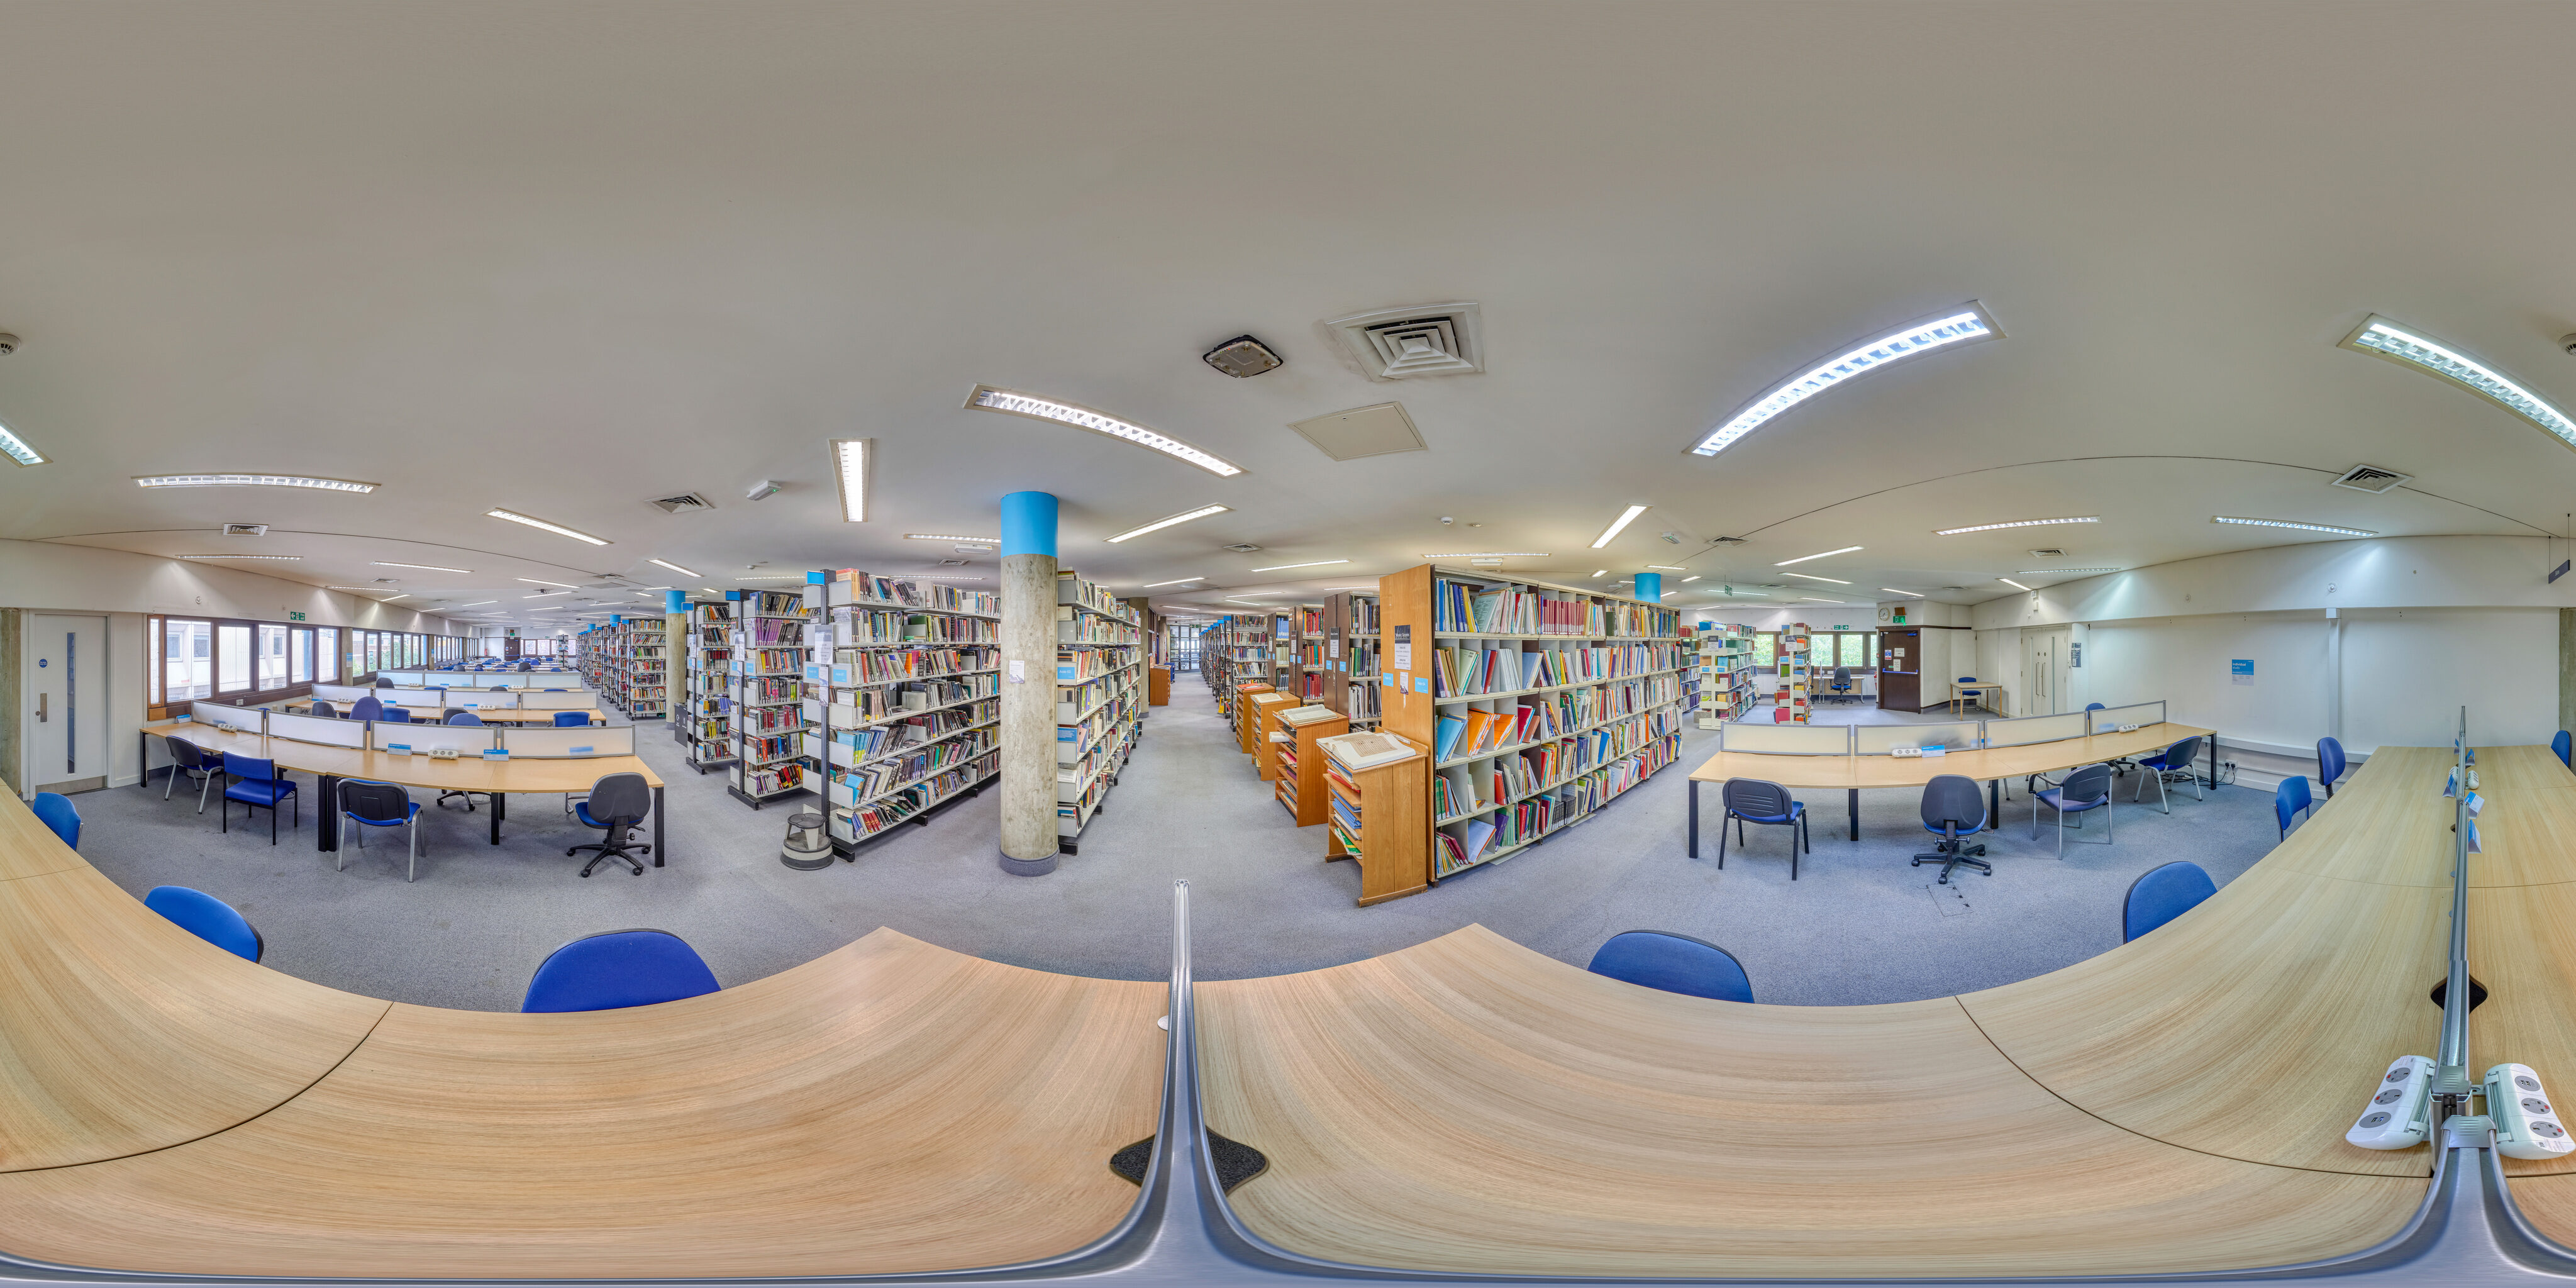 360 of Library upstairs